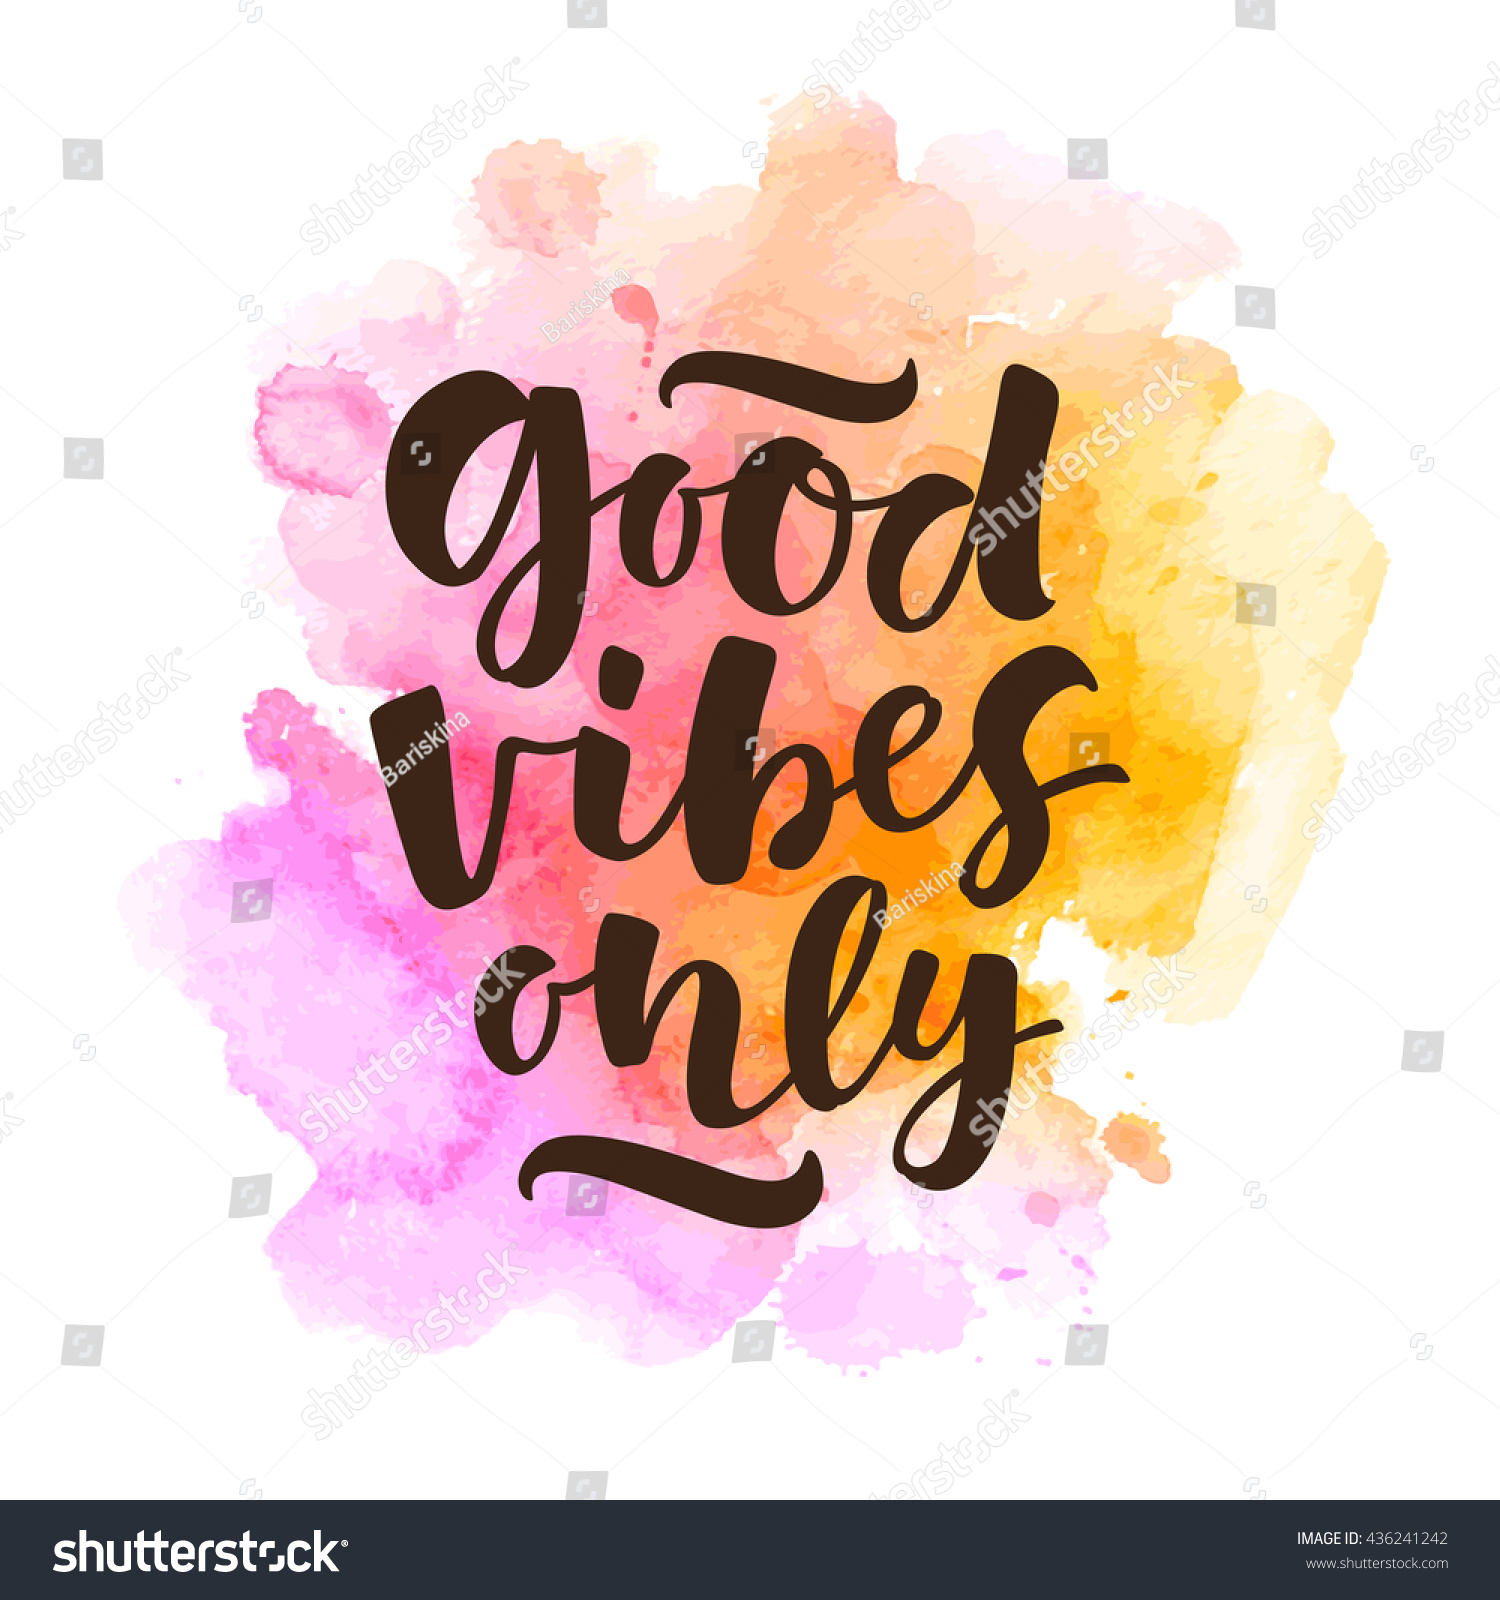 80206f33c Good vibes only vector lettering card. Hand drawn illustration phrase.  Handwritten modern brush calligraphy.